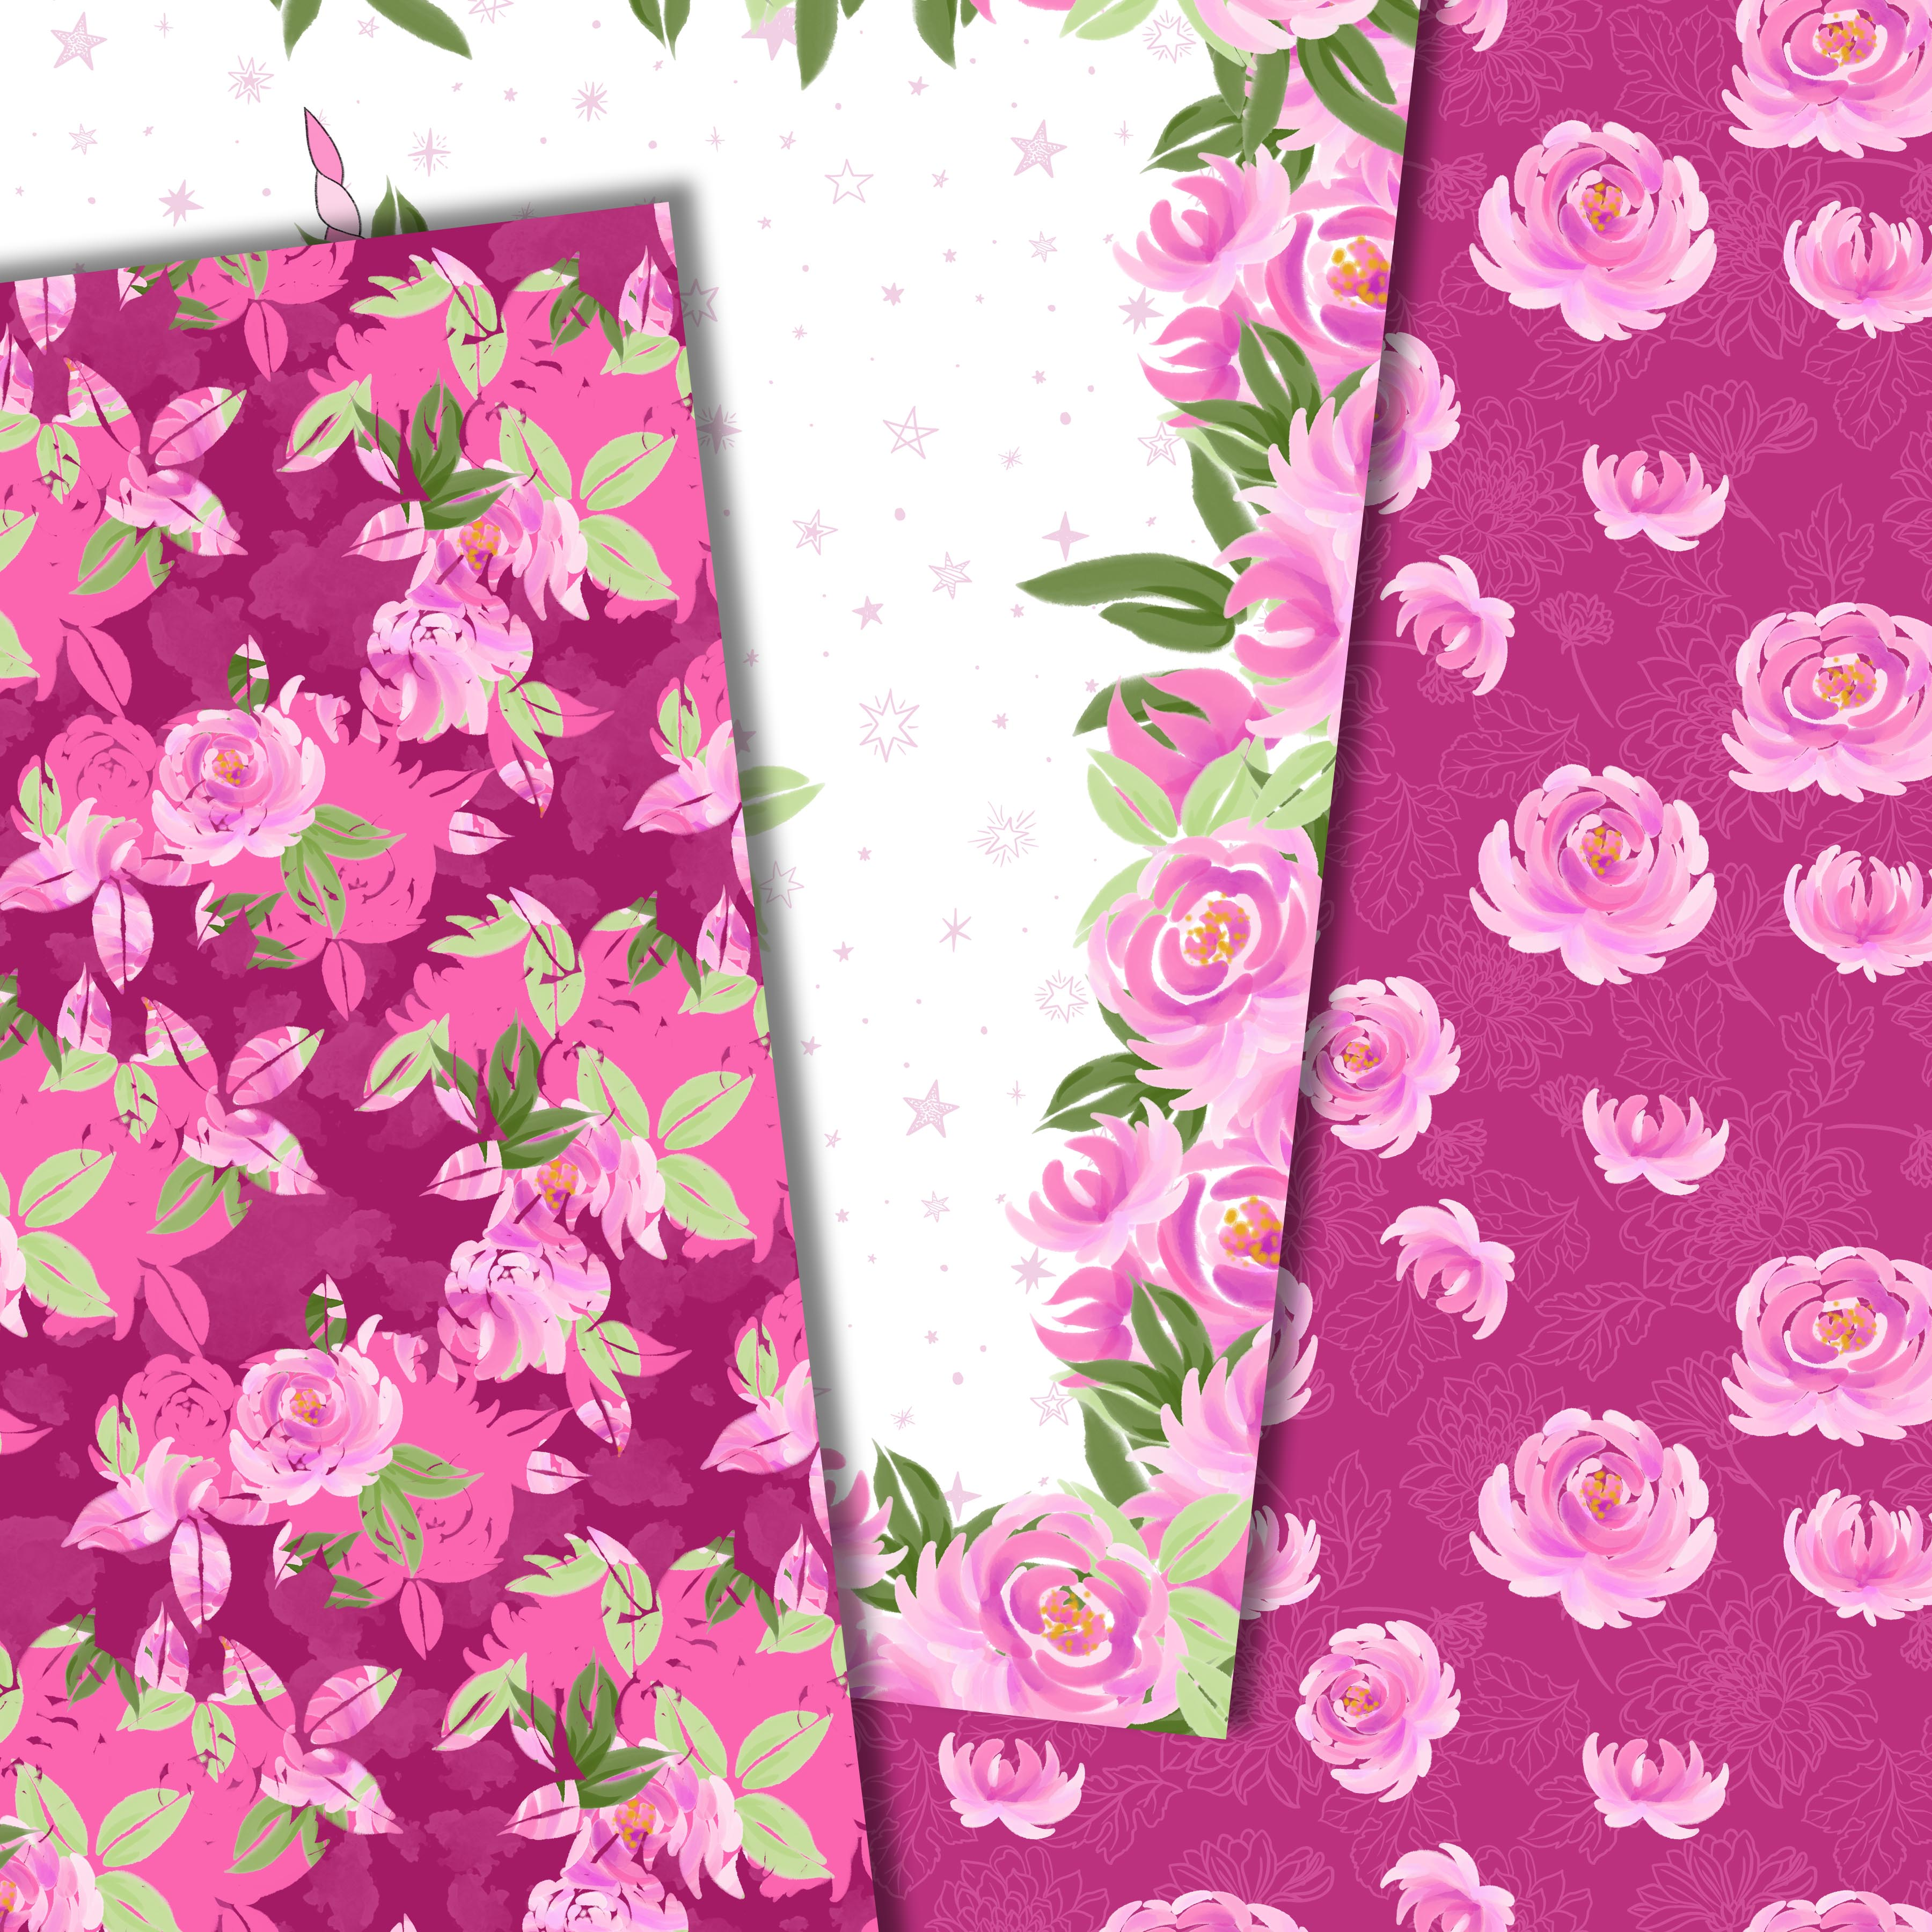 Unicorns and flowers in pink example image 4